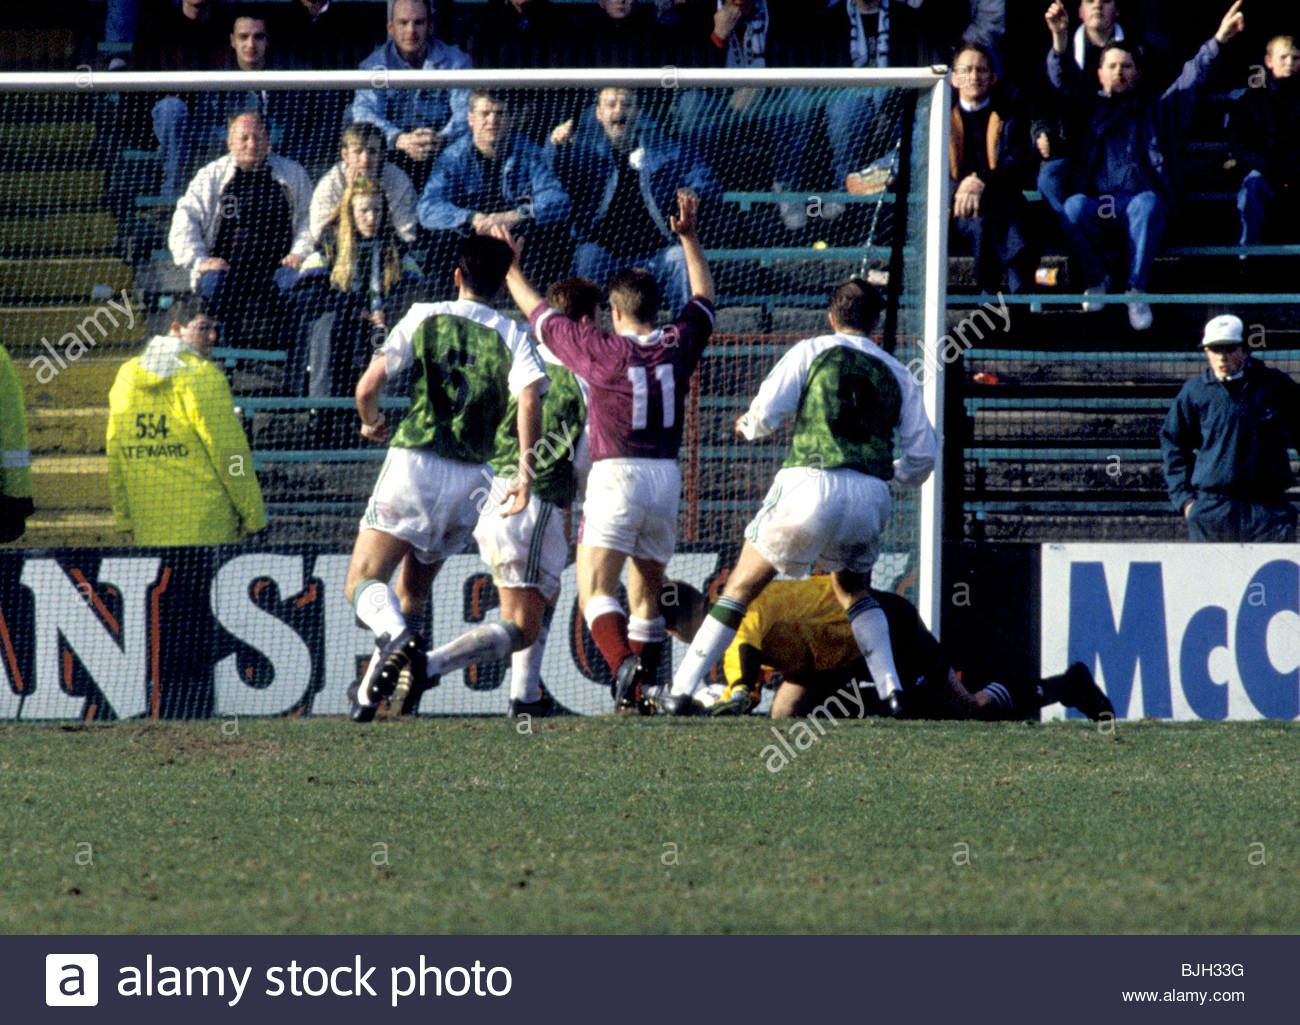 21/03/92 PREMIER DIVISION HIBS V HEARTS (1-2) EASTER ROAD - EDINBURGH John Robertson (11) celebrates after Hibs - Stock Image